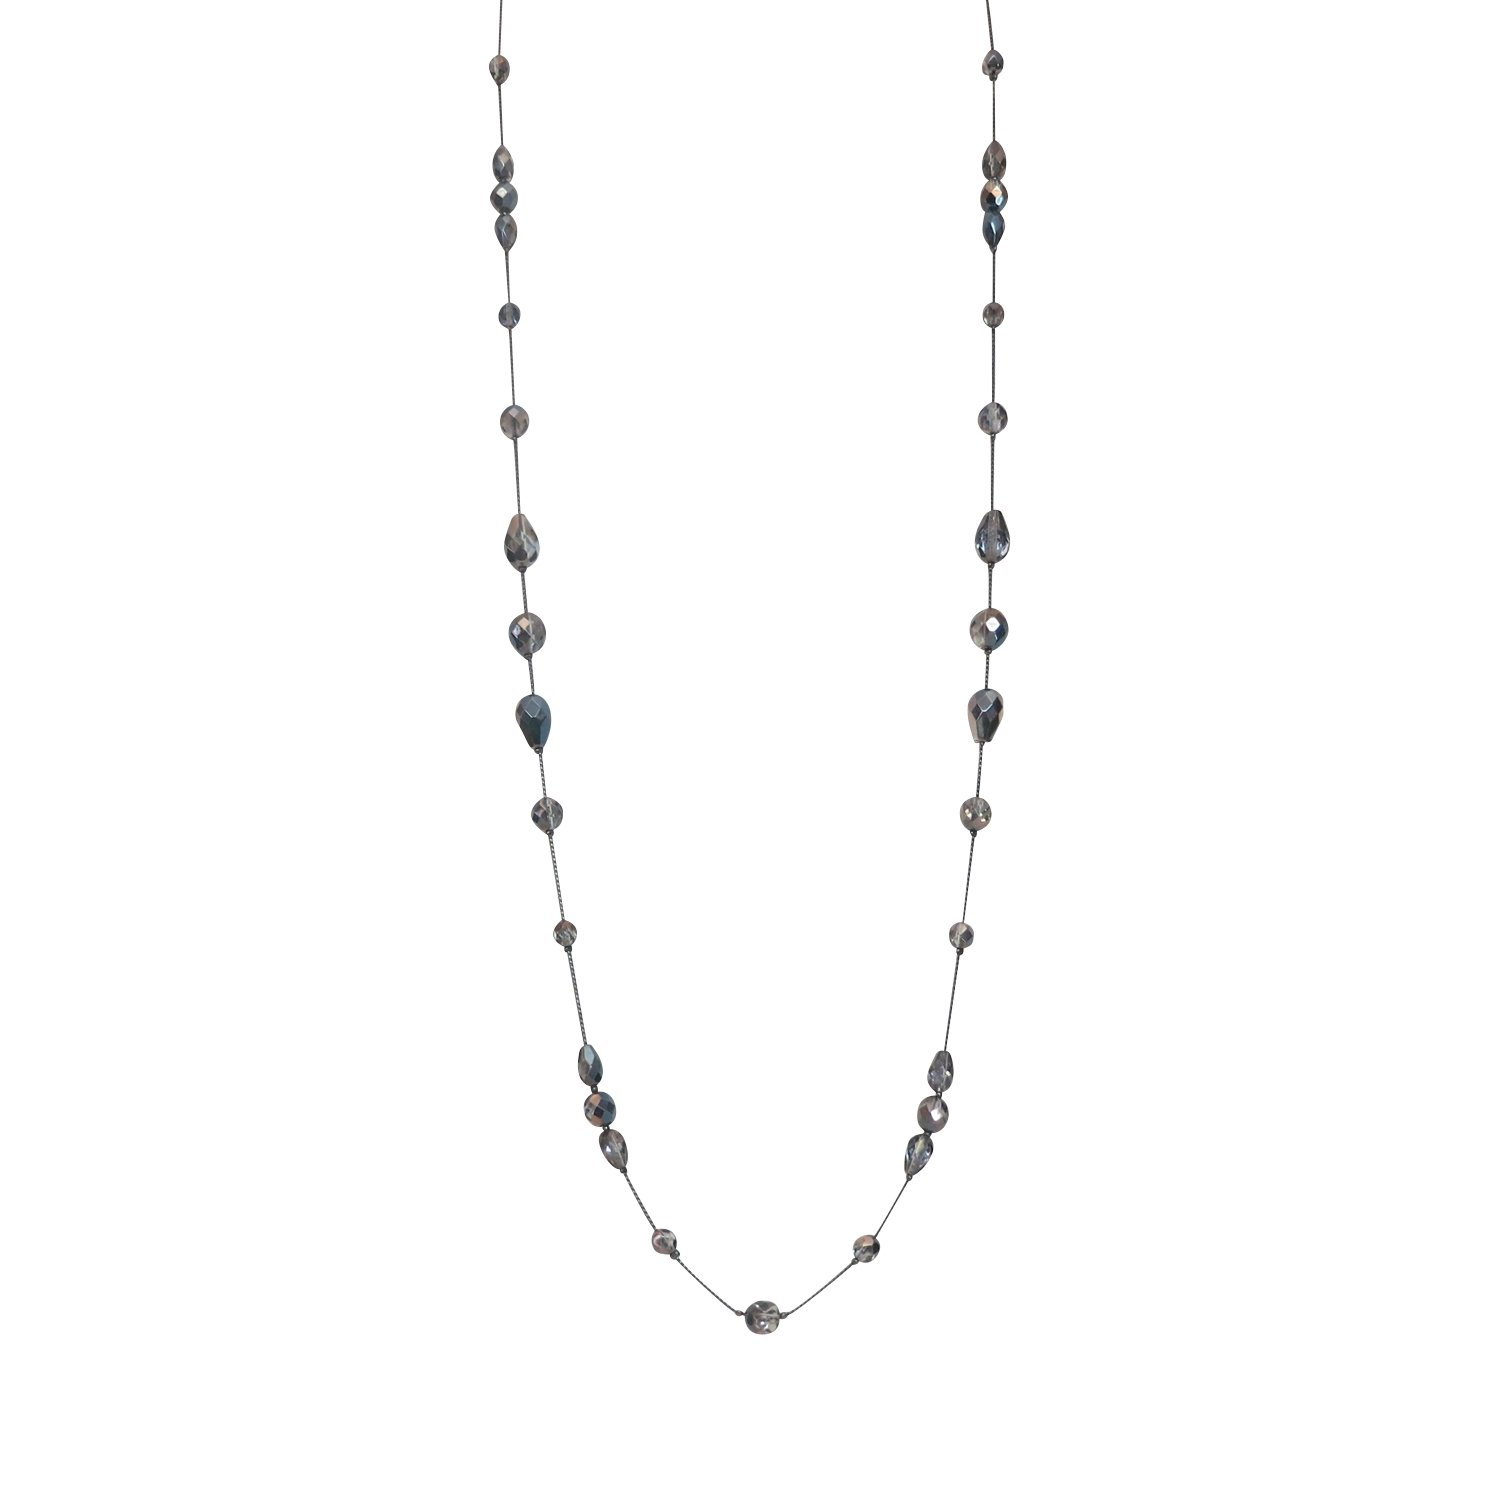 LaRaso & Co Long Necklace for Women Handcrafted Silver Tone Czech Glass Crystal Bead